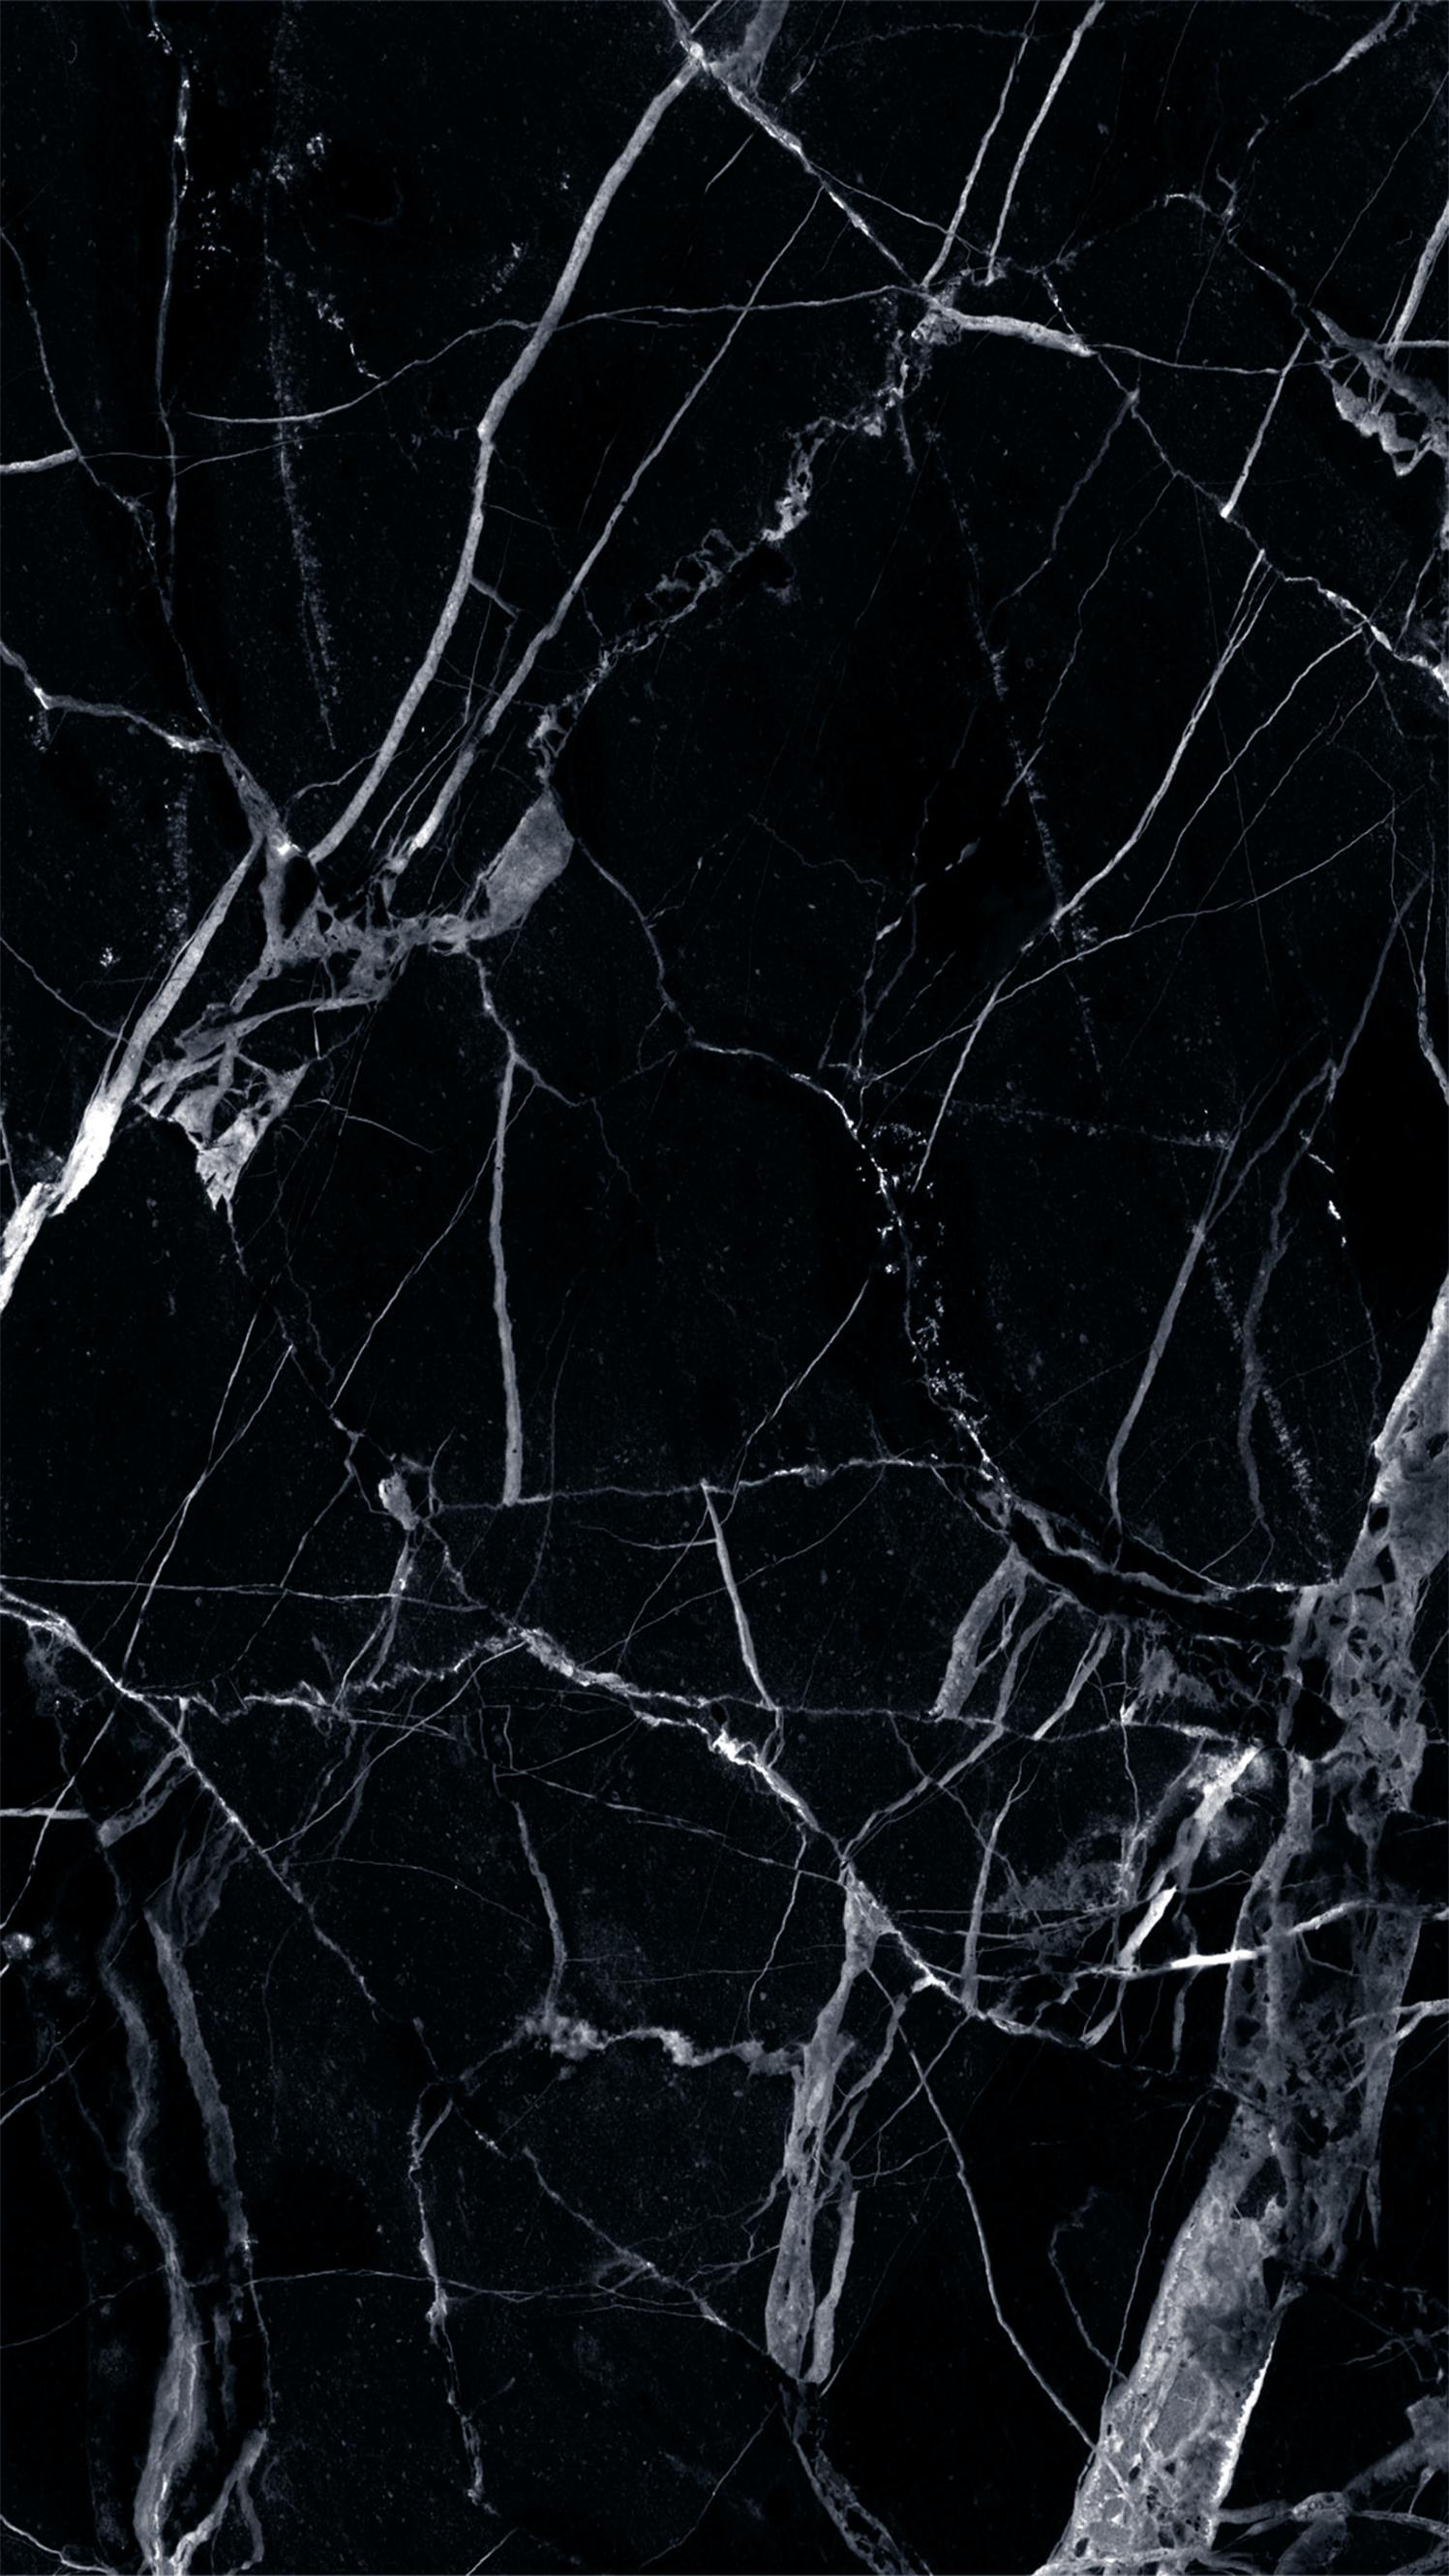 Marble Black 20 Wallpapers Adorable Wallpapers Images, Photos, Reviews